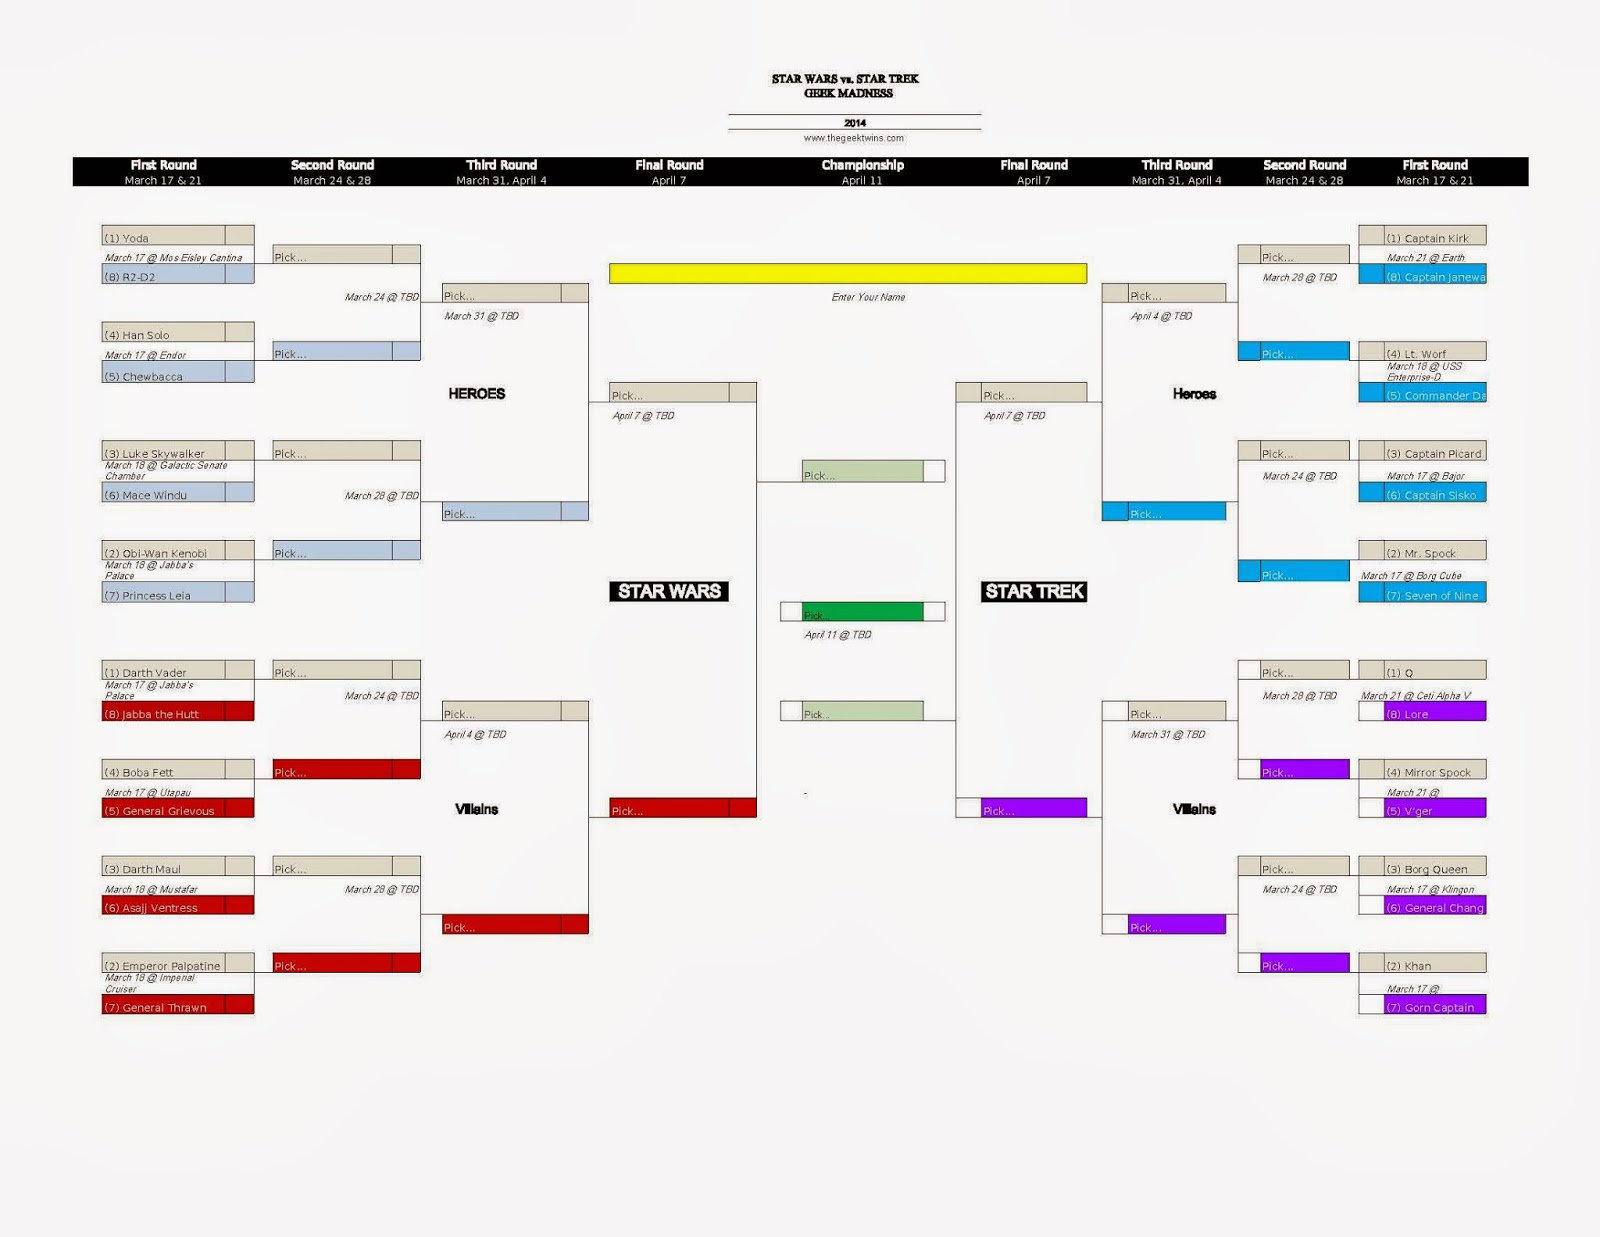 March Madness Bracket 2014 Predictions Enlarge the bracket here.